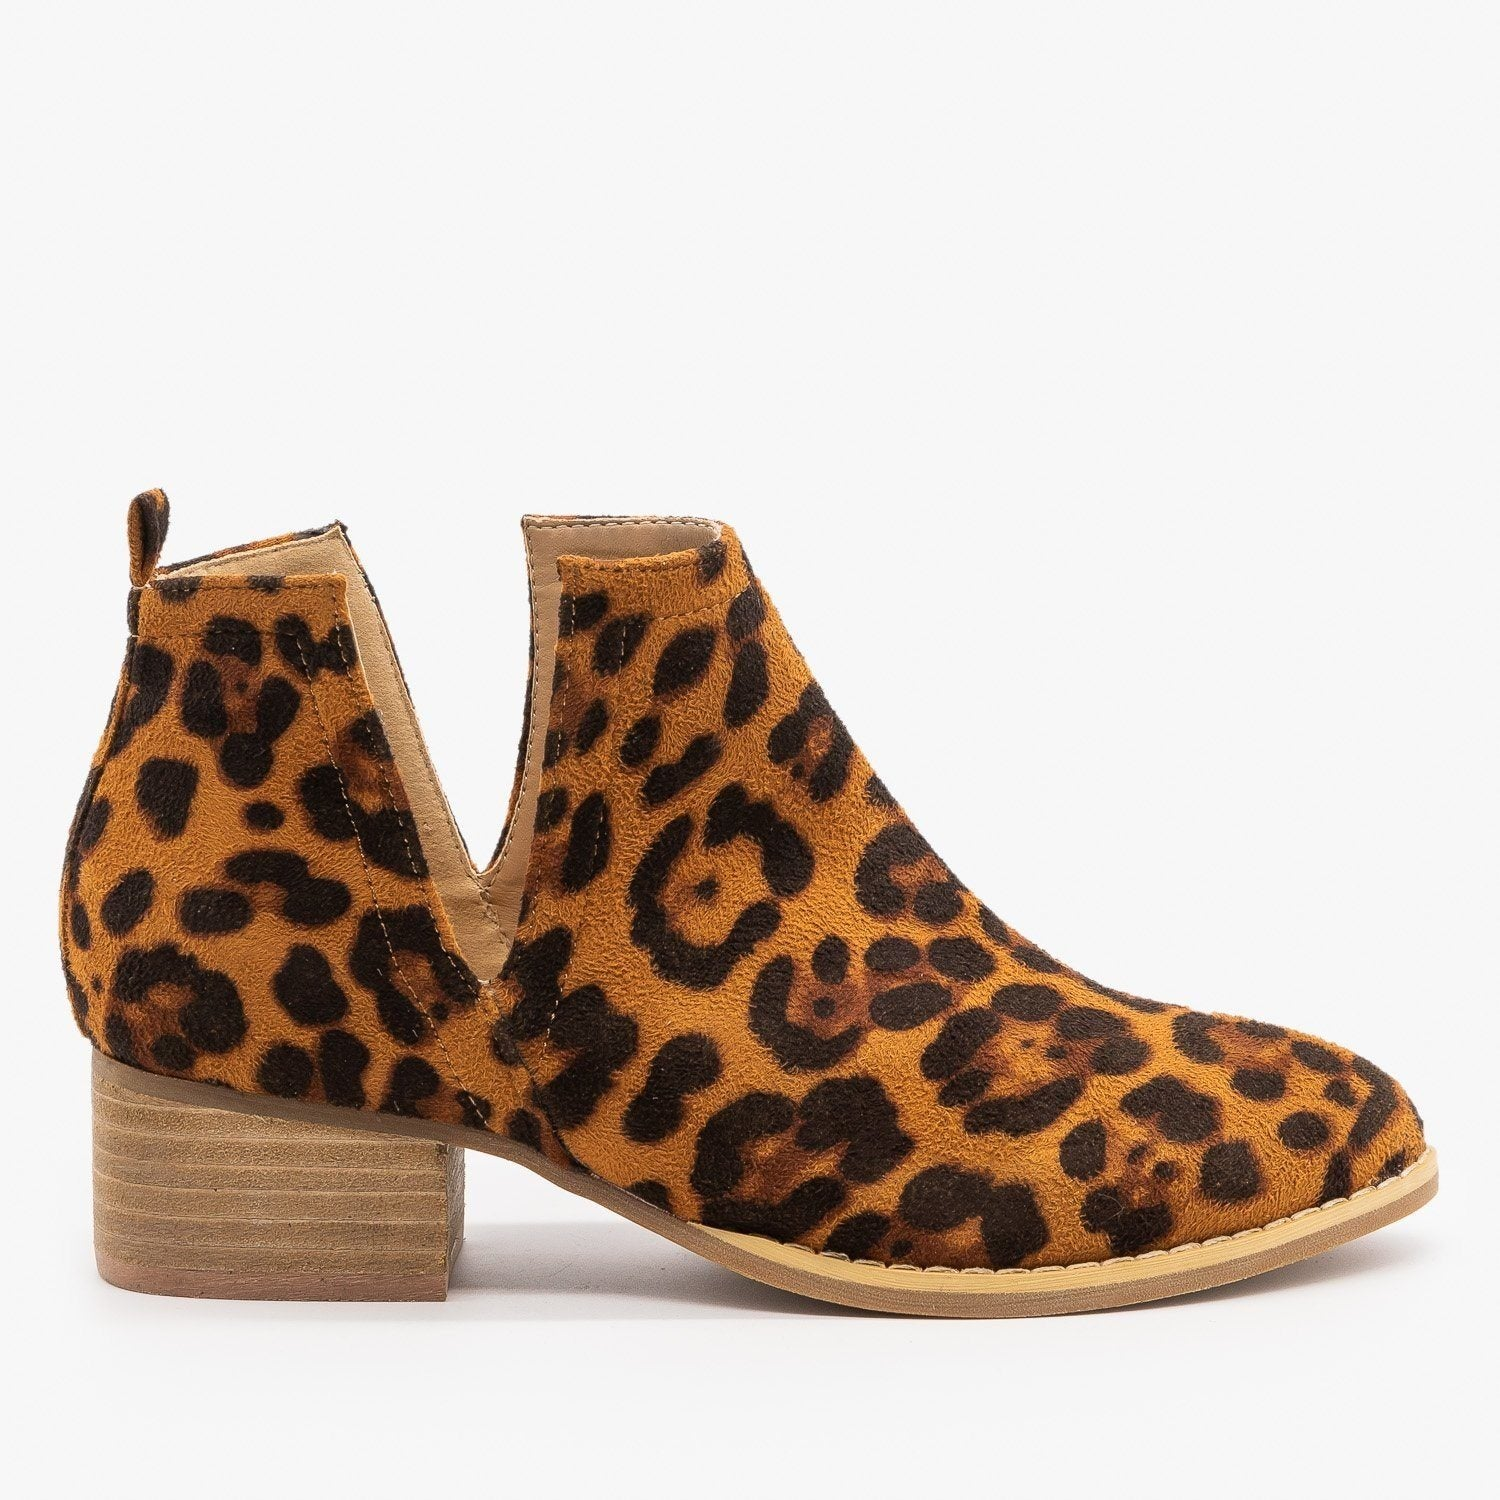 V-Cut Booties - ARider Girl Shoes Avery